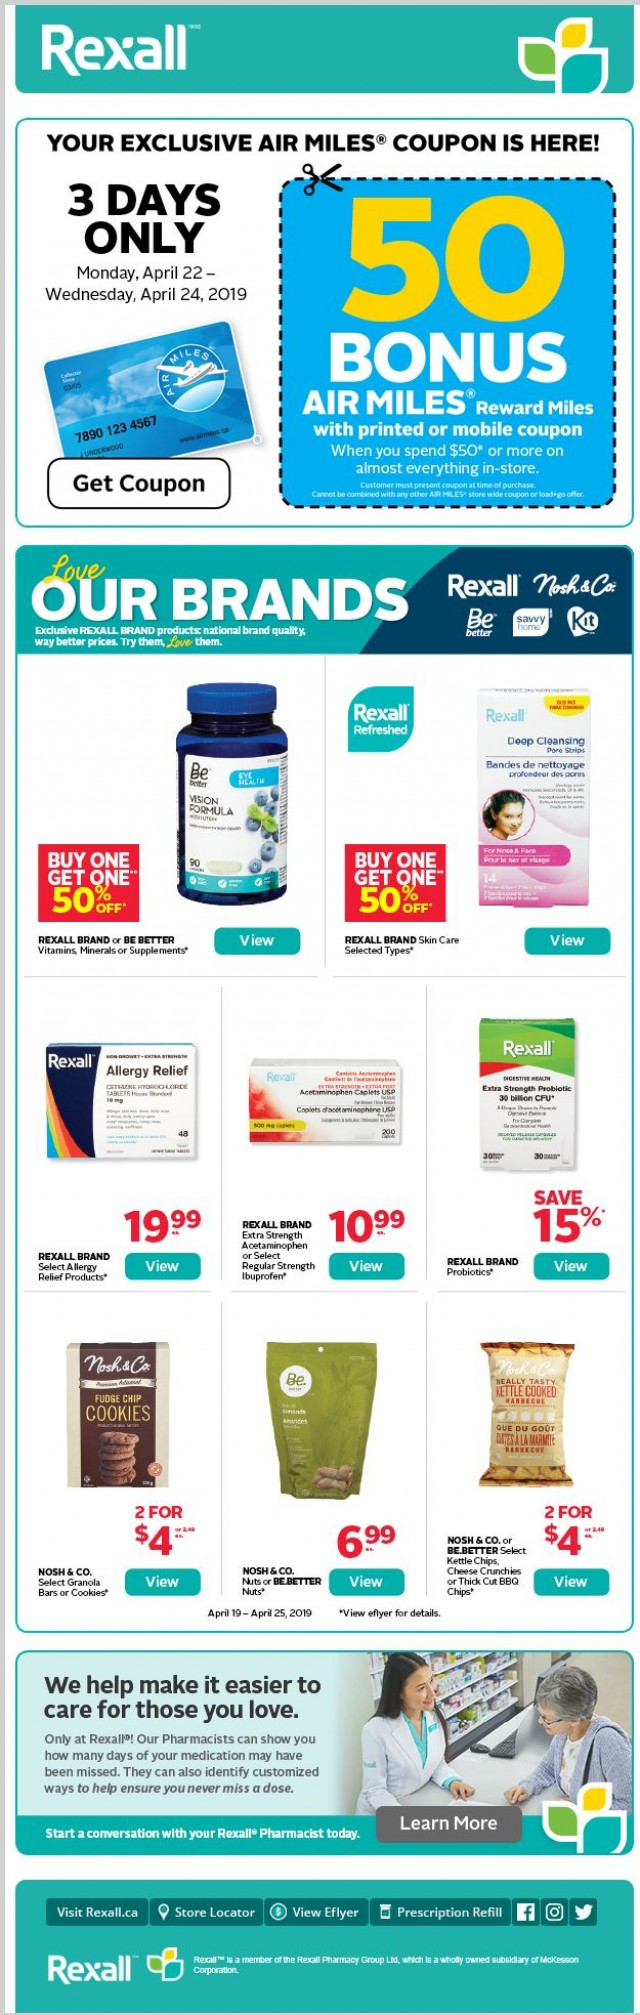 Coupon for: Rexall Drugstore - Your 50 AIR MILES® Bonus Miles Coupon is Here!